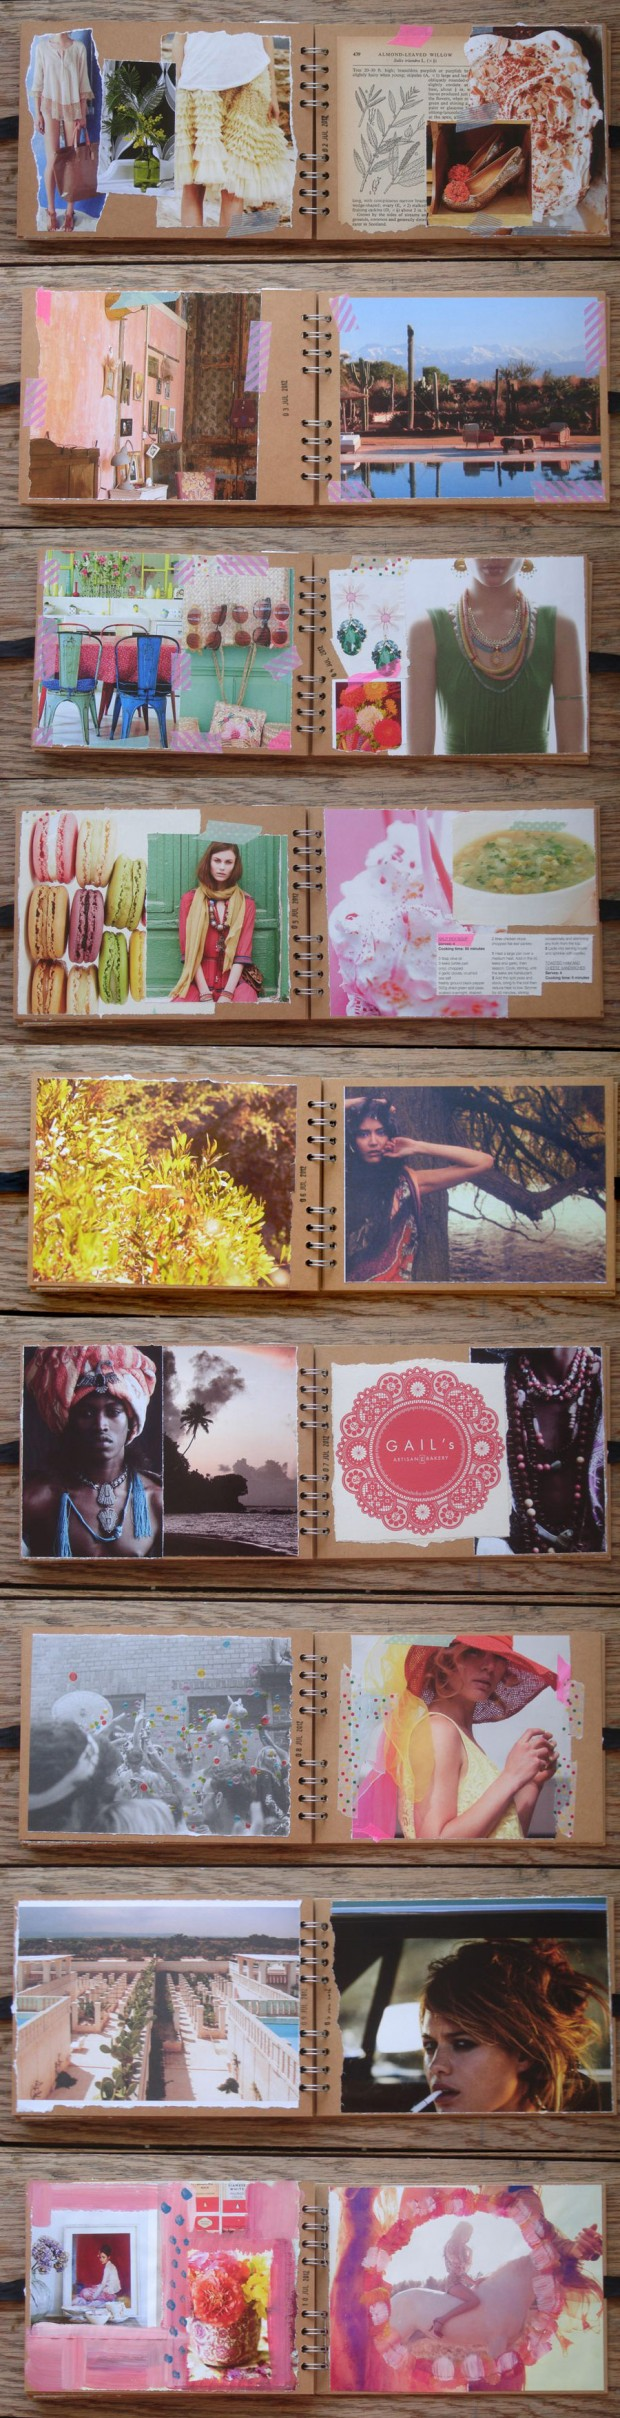 collage, journal, diary, visual,